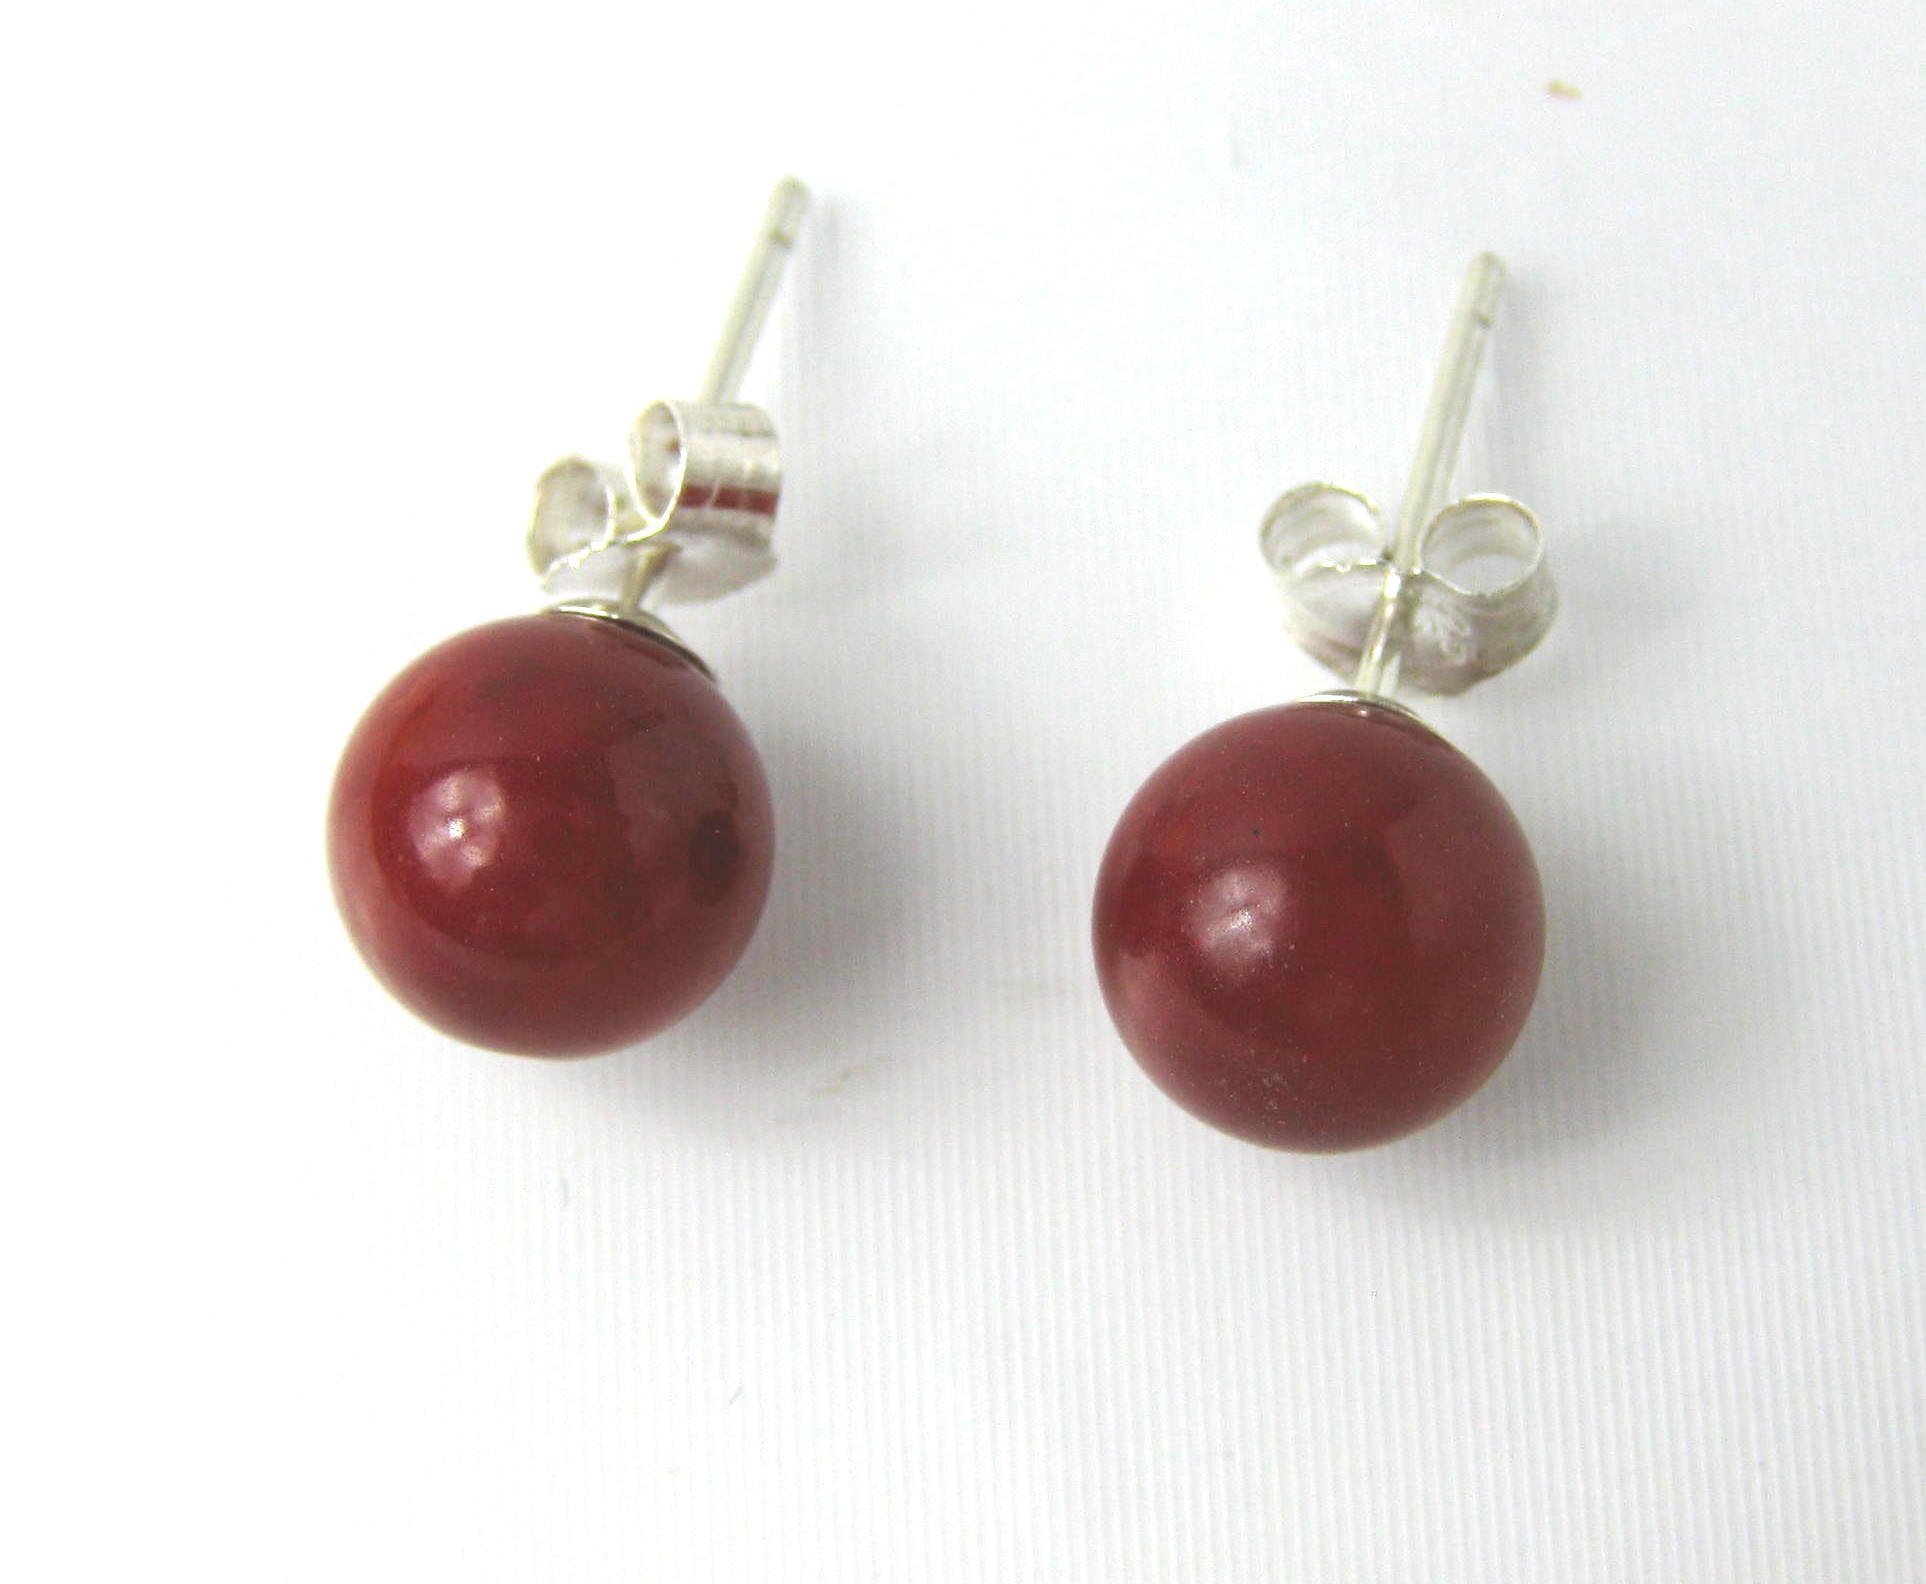 8mm Round Red Coral Stud Earrings  - er-cr1